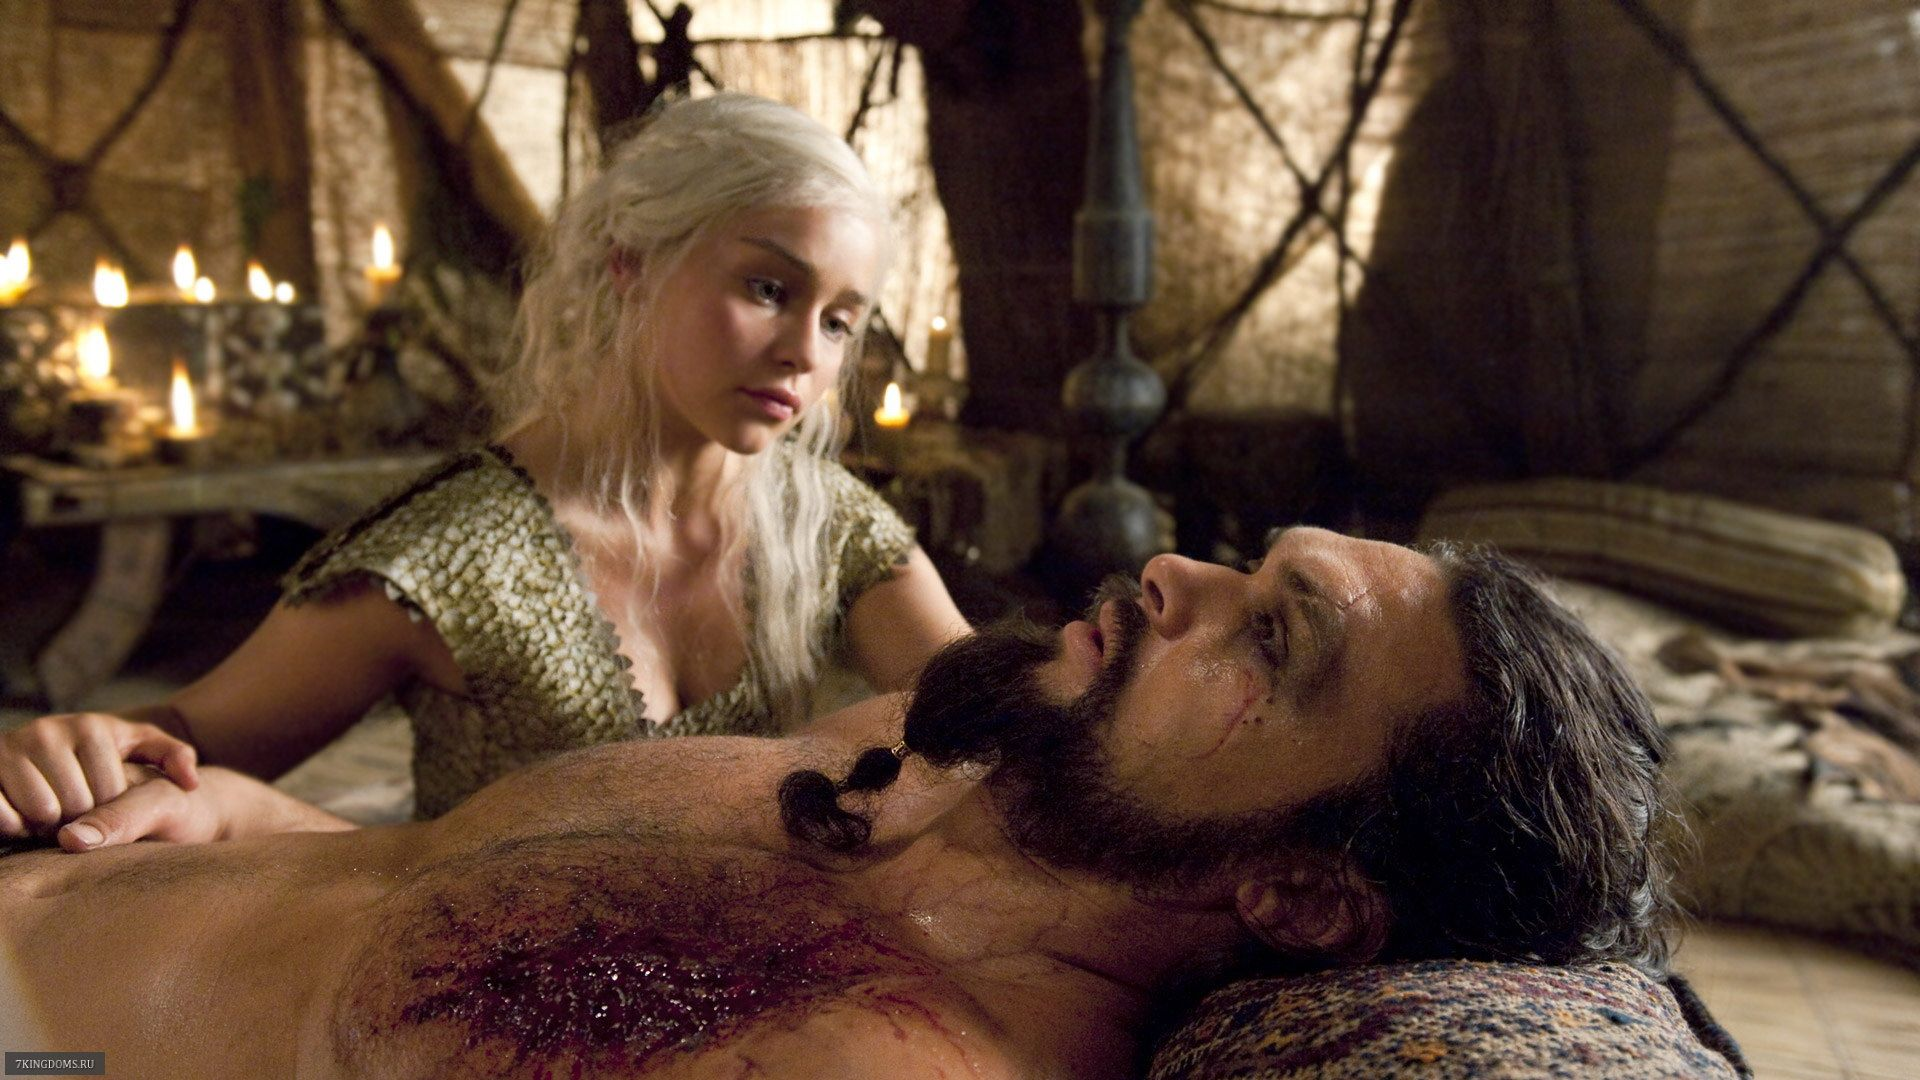 Daenerys targaryen and khal drogo wallpaper daenerys targaryen wedding - Daenerys And Drogo This Costume Of Dany S Is So Underrated I Think It Is